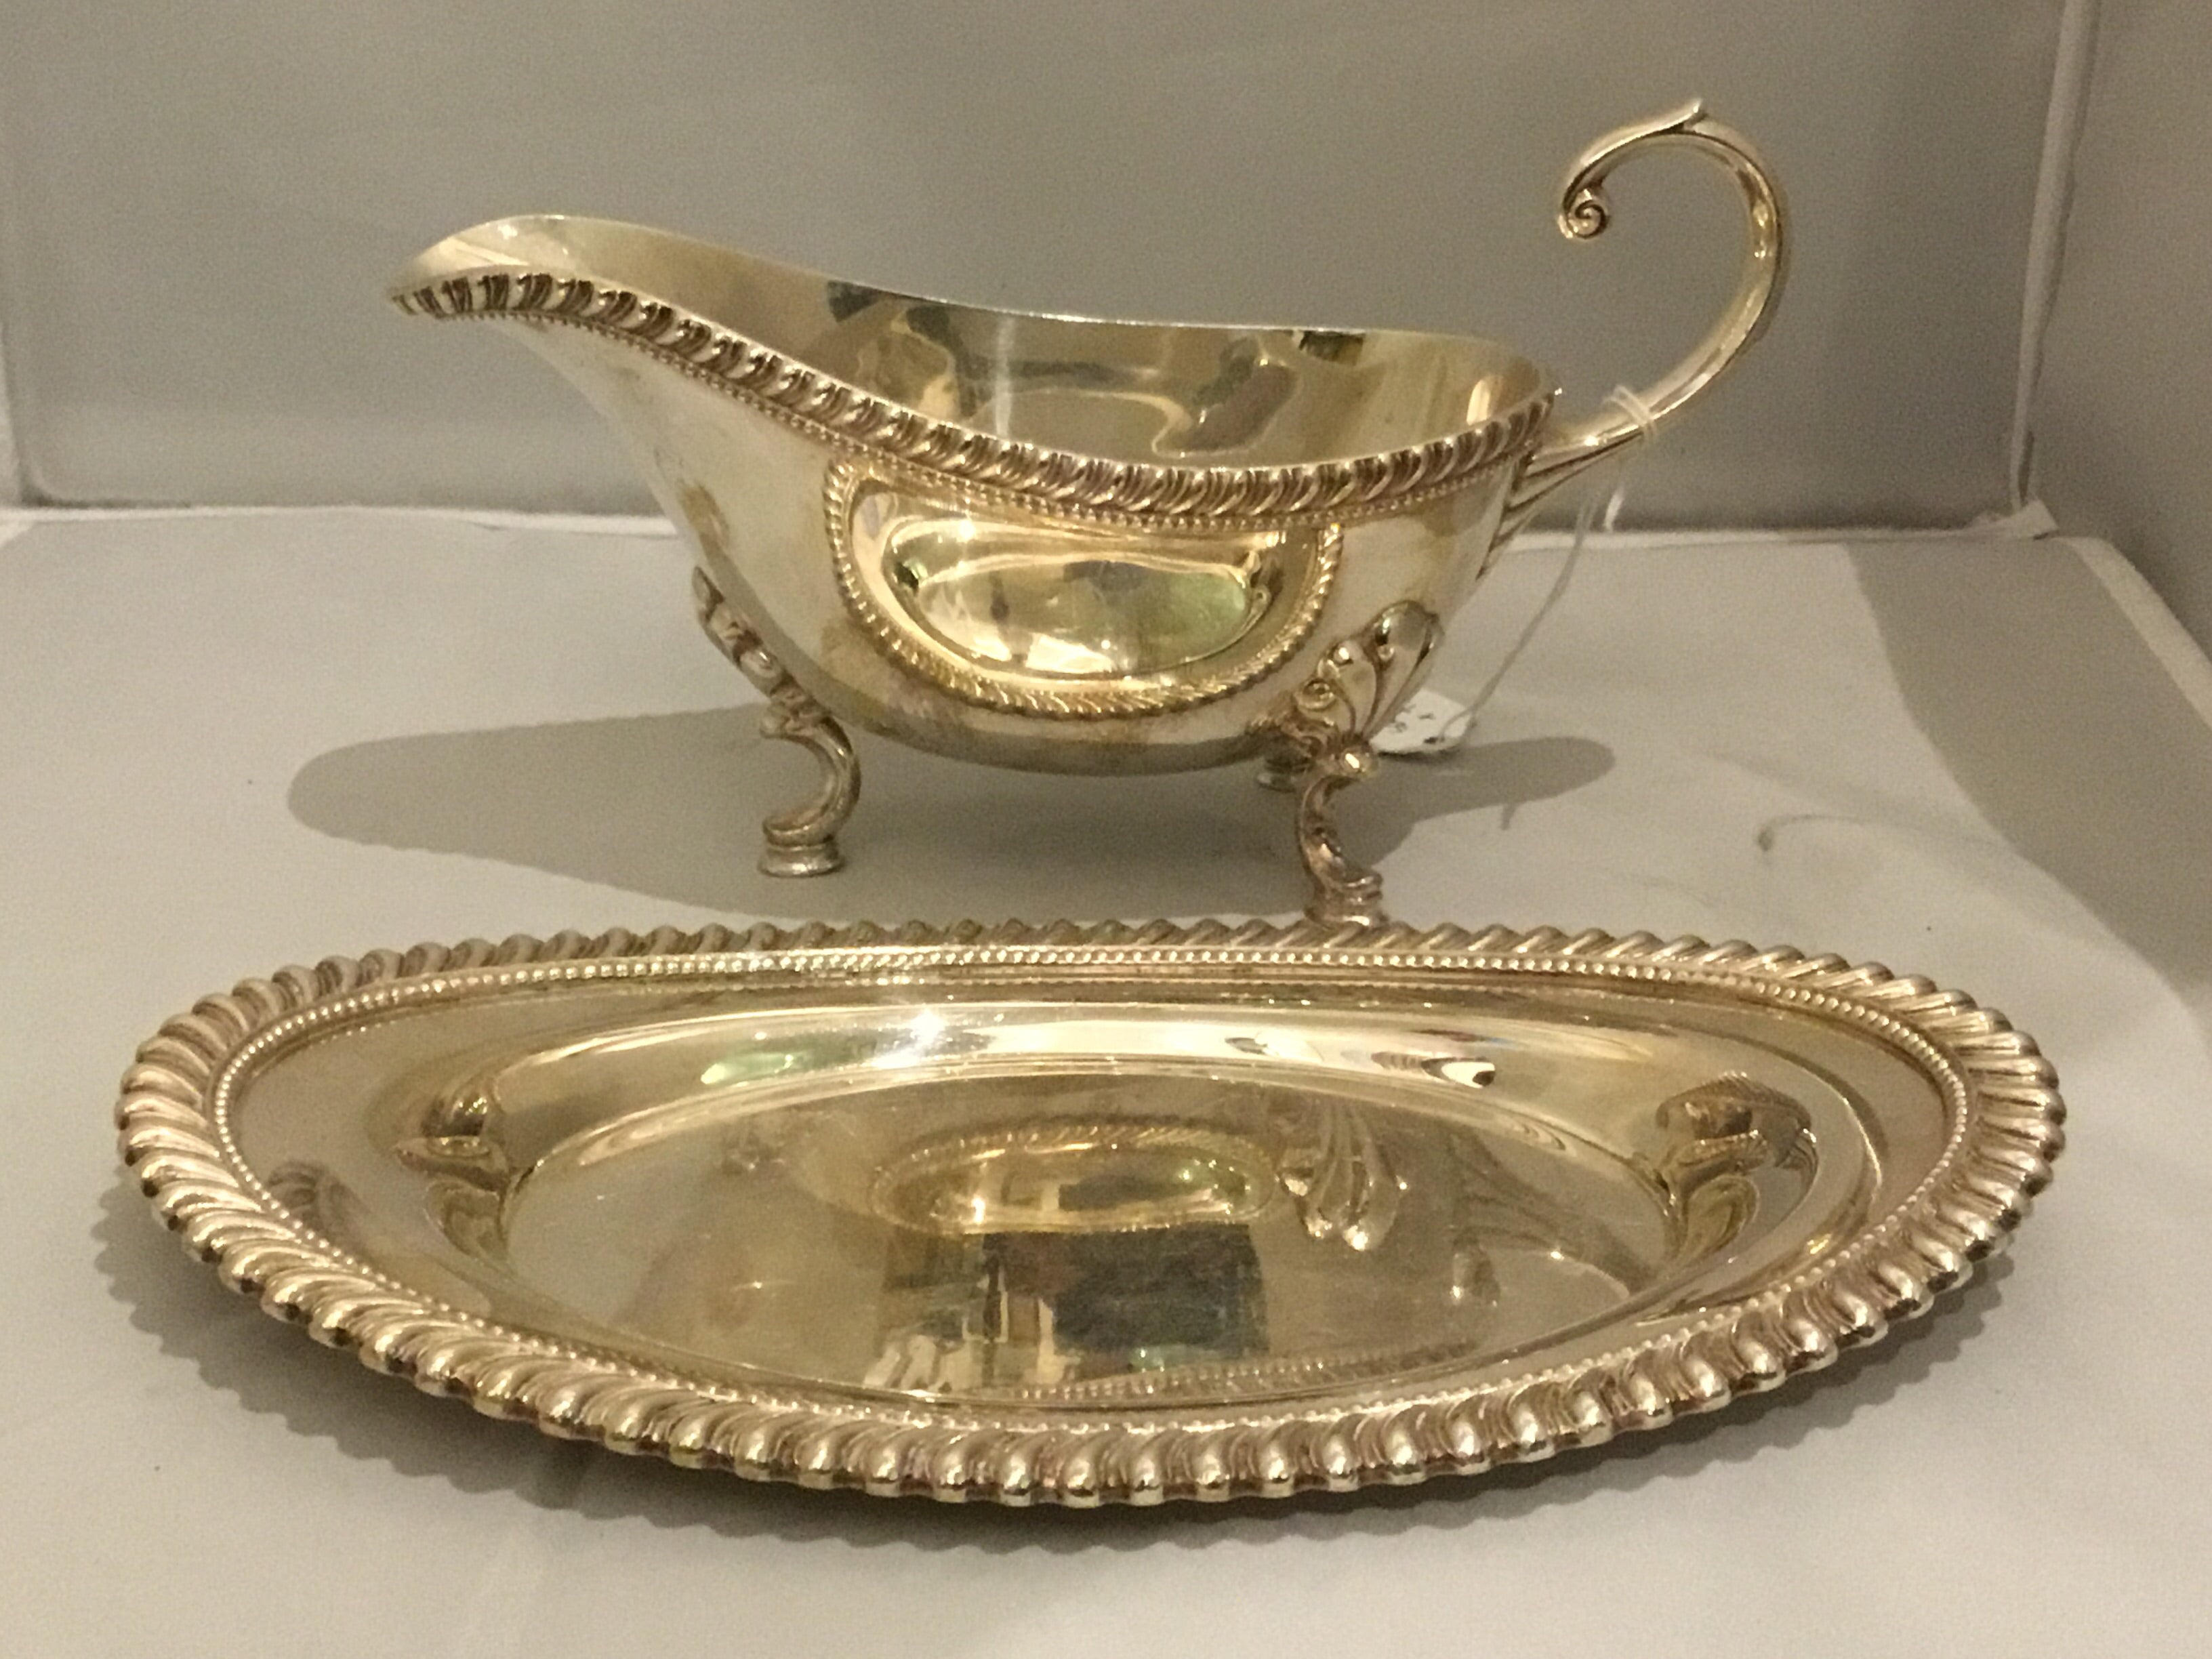 Silver Sauce Boat and Tray